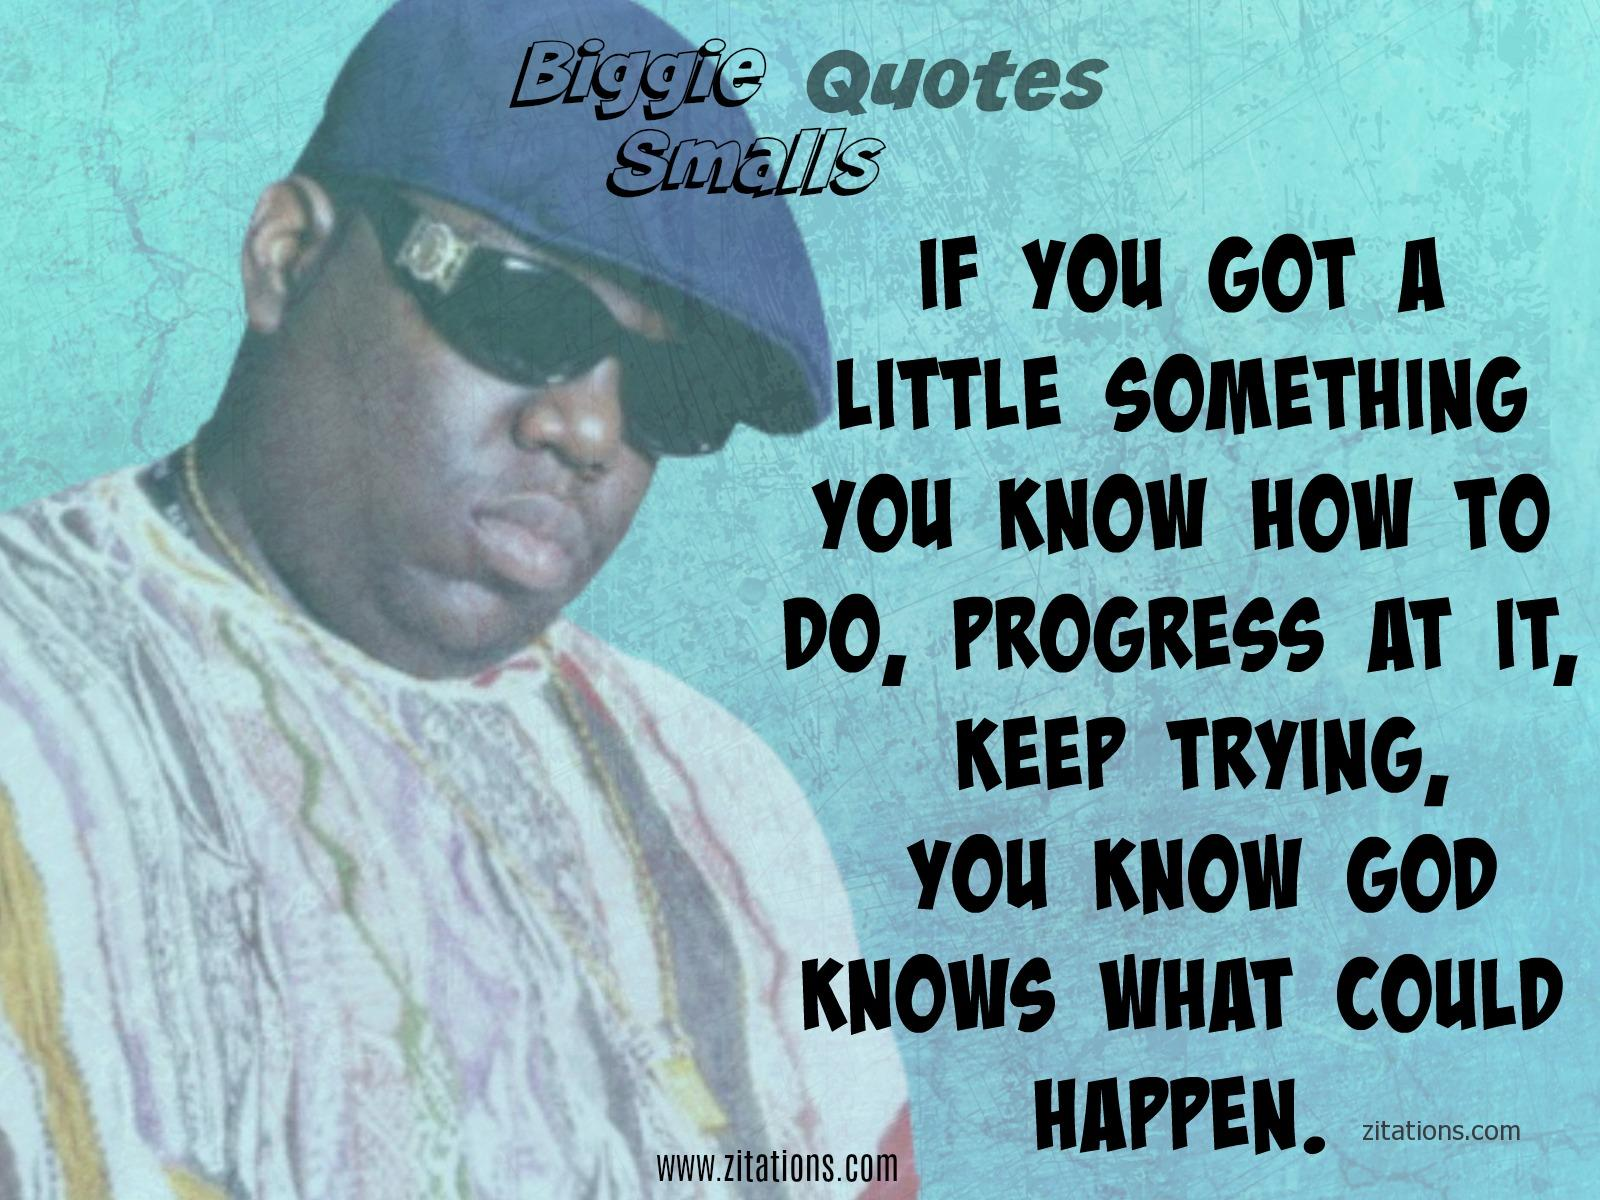 Biggie Smalls Quotes on Success